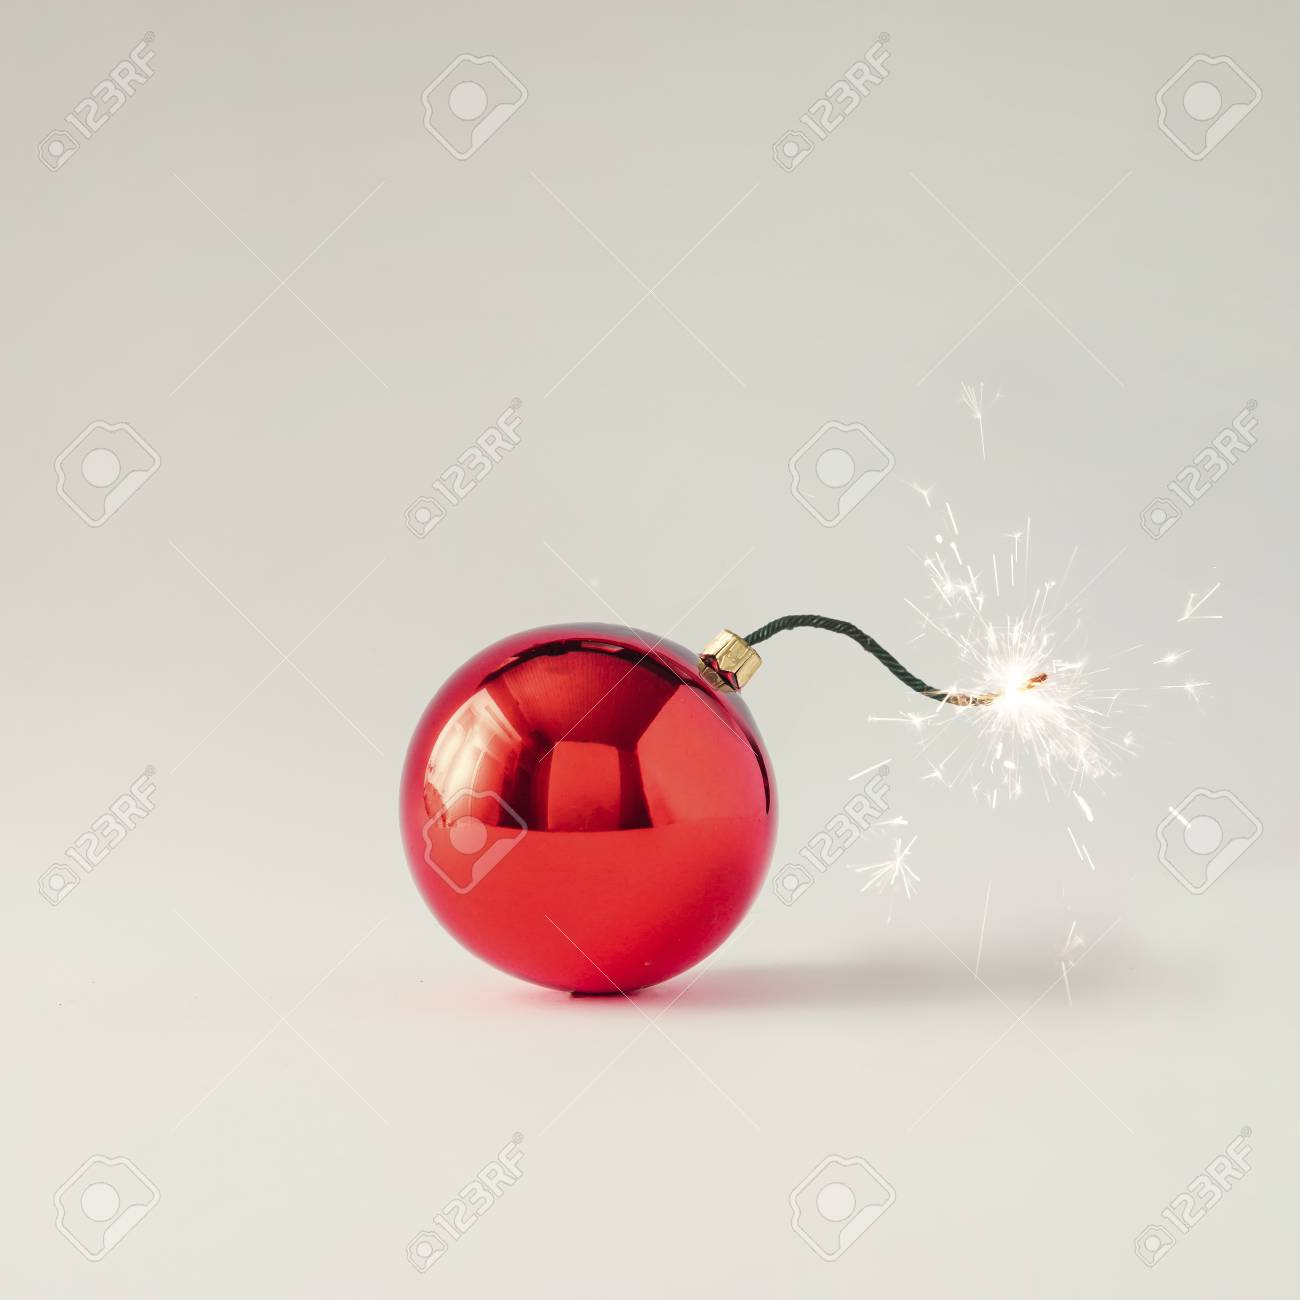 Christmas bauble decoration fuse bomb. Time for celebration. New Year concept. - 89553718